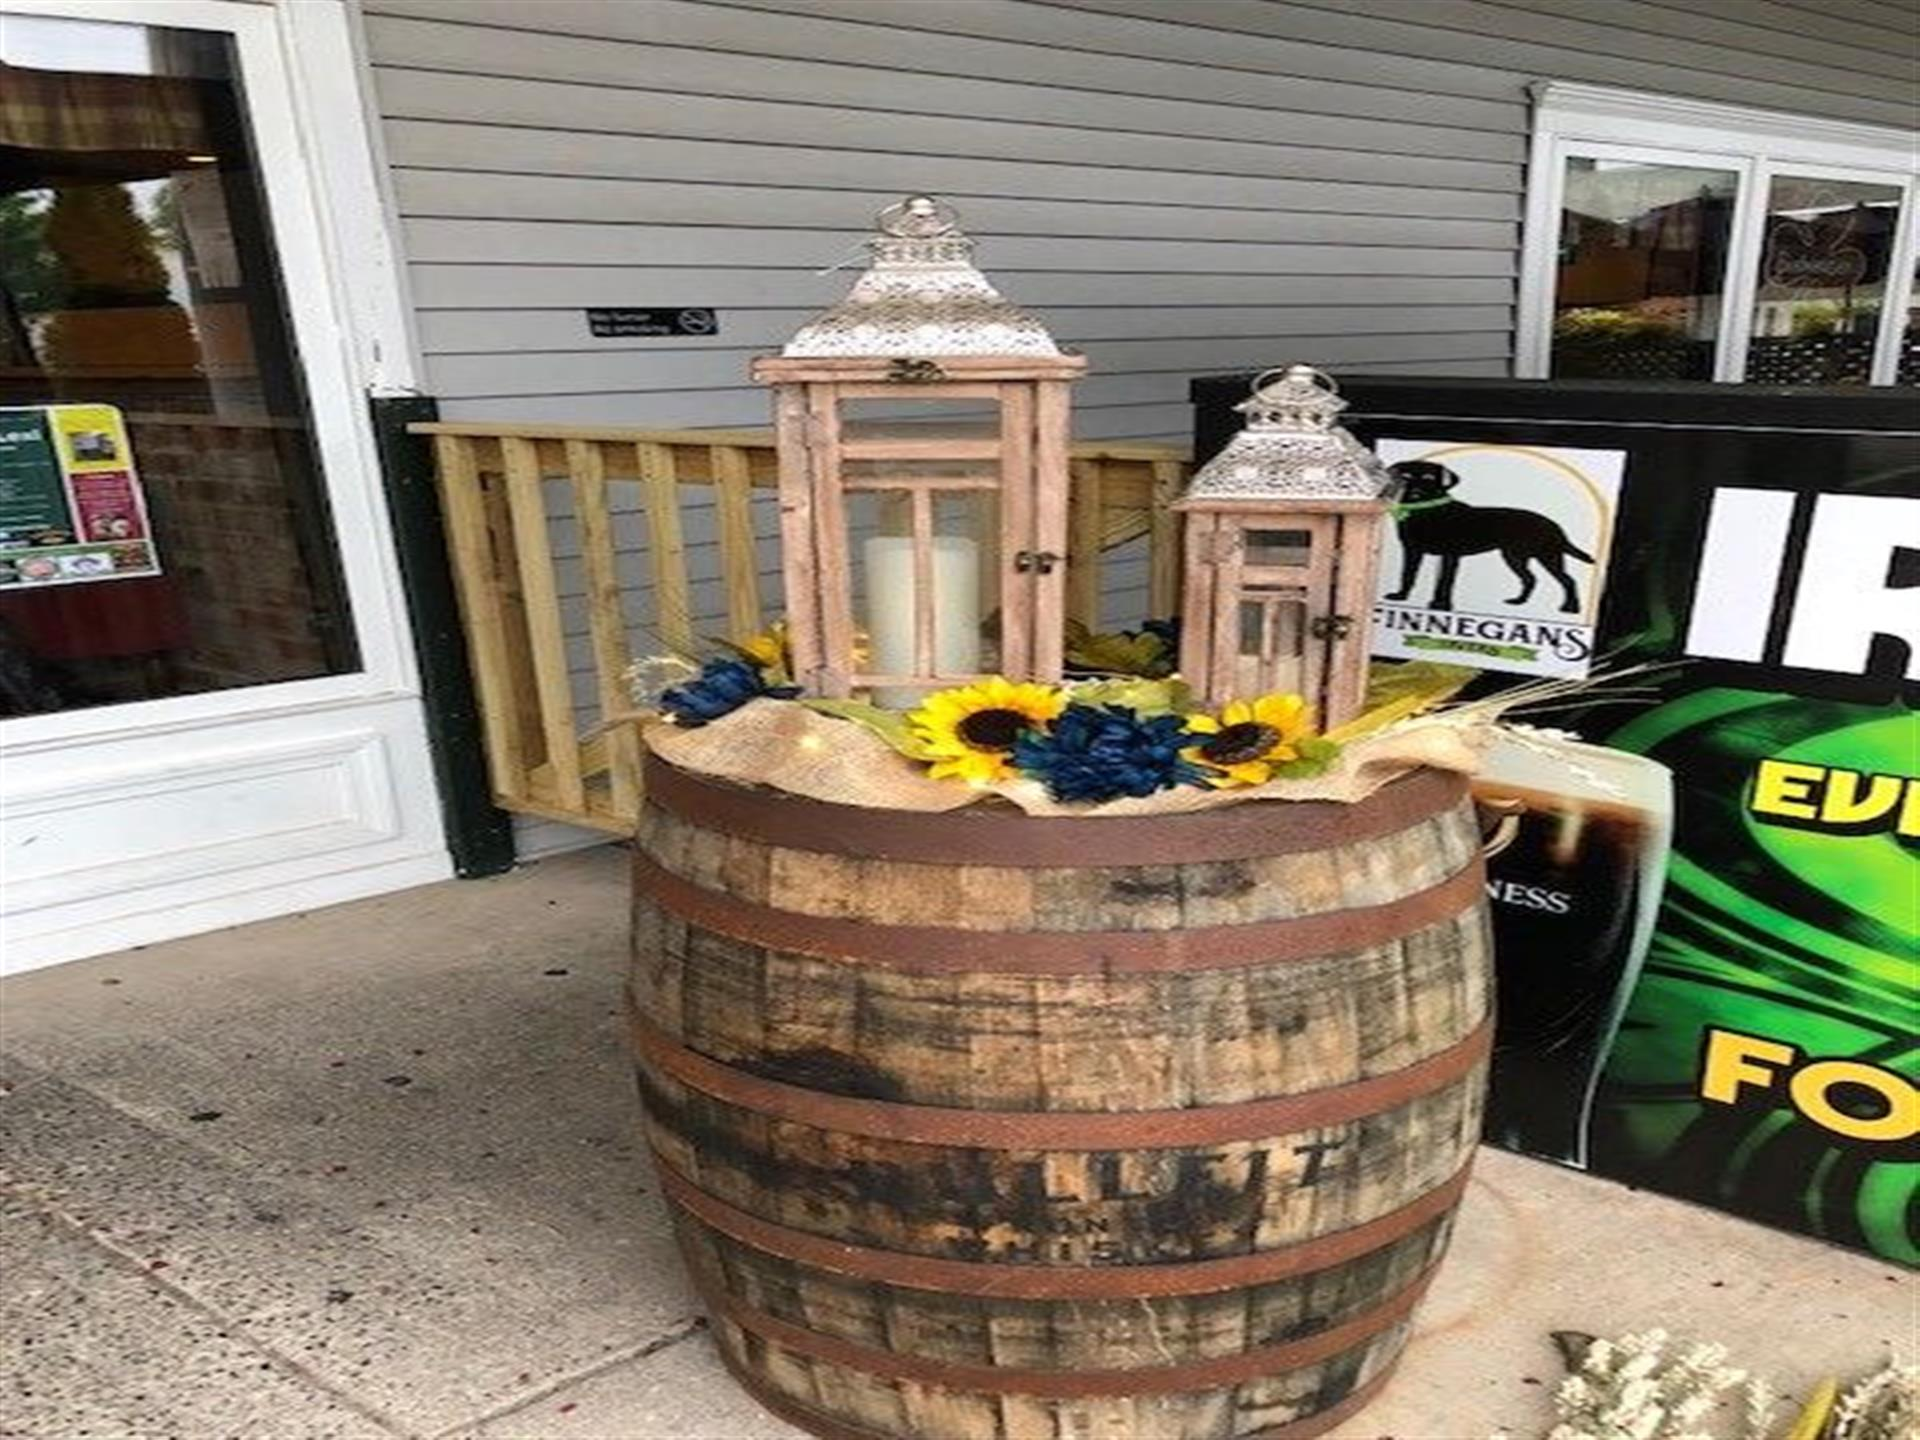 wine barrel topped with two lanterns and sunflower decorations